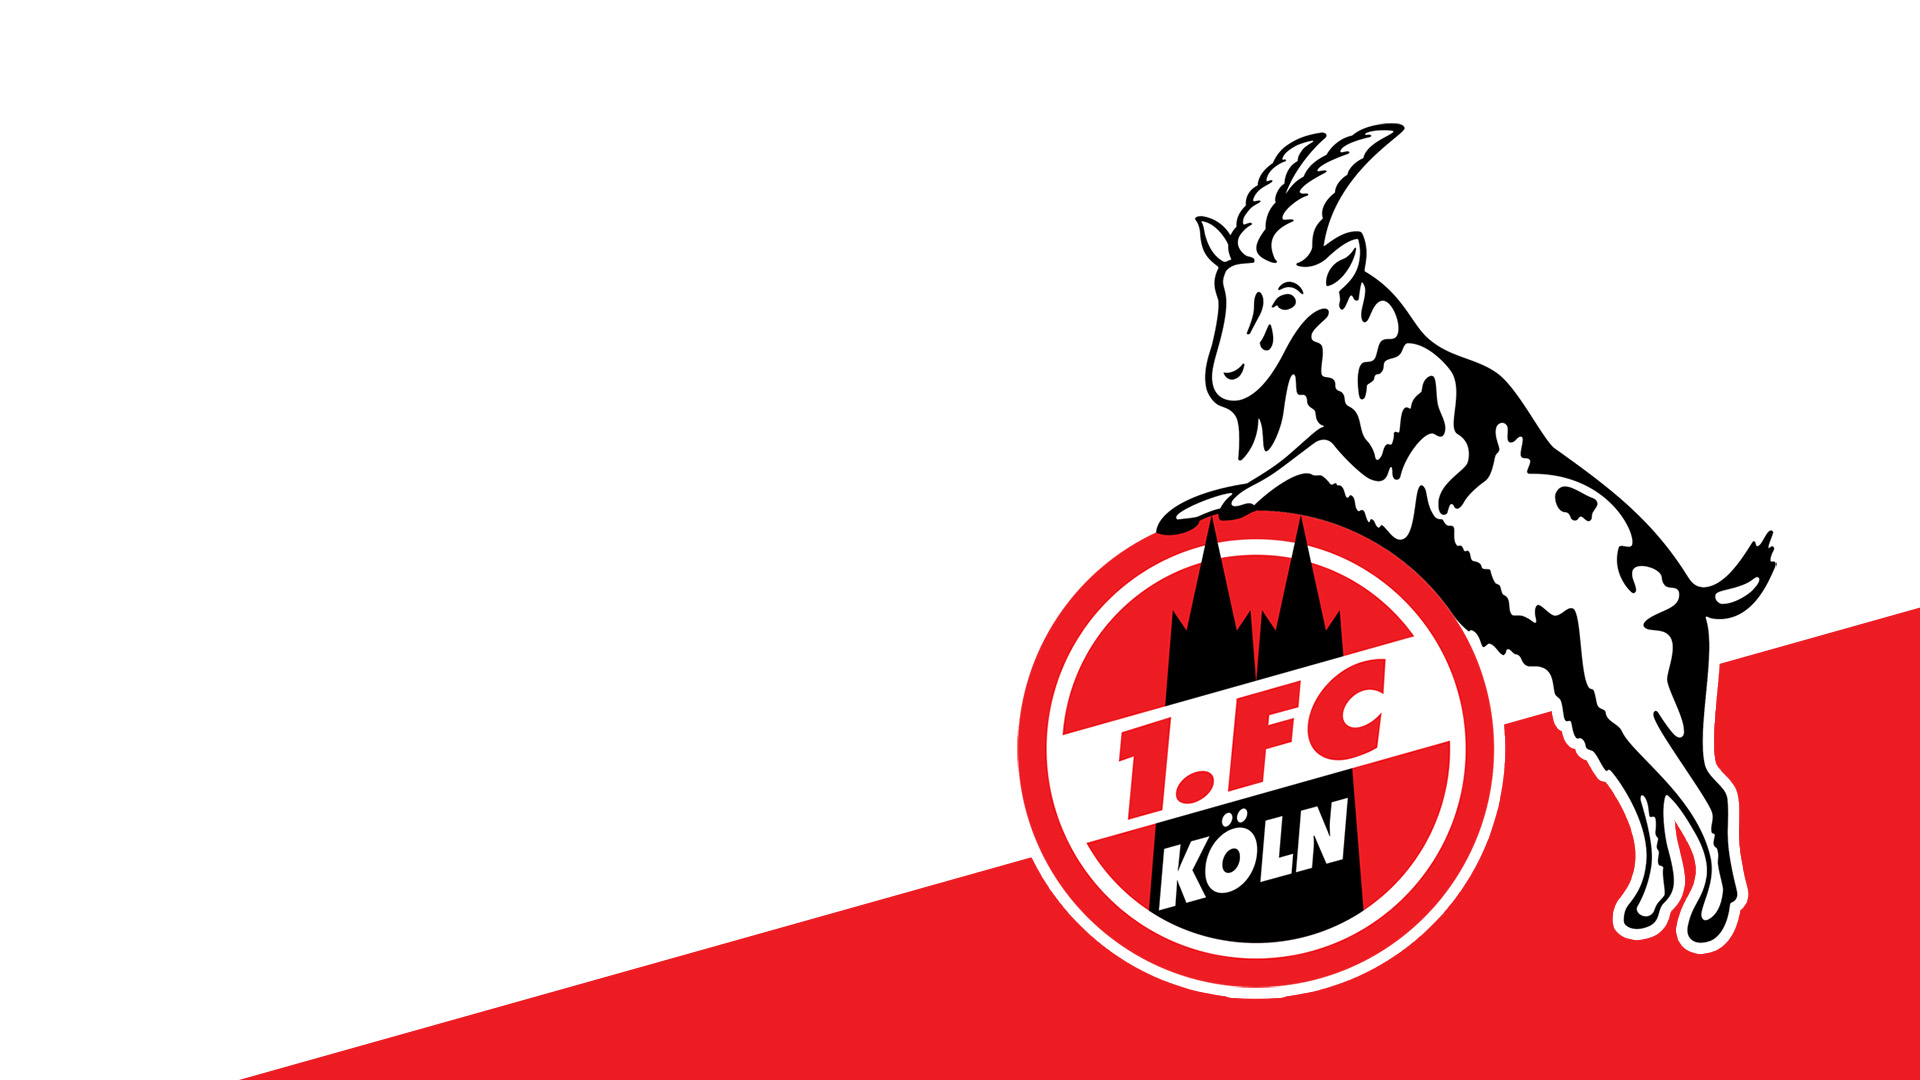 1.fc köln bilder download